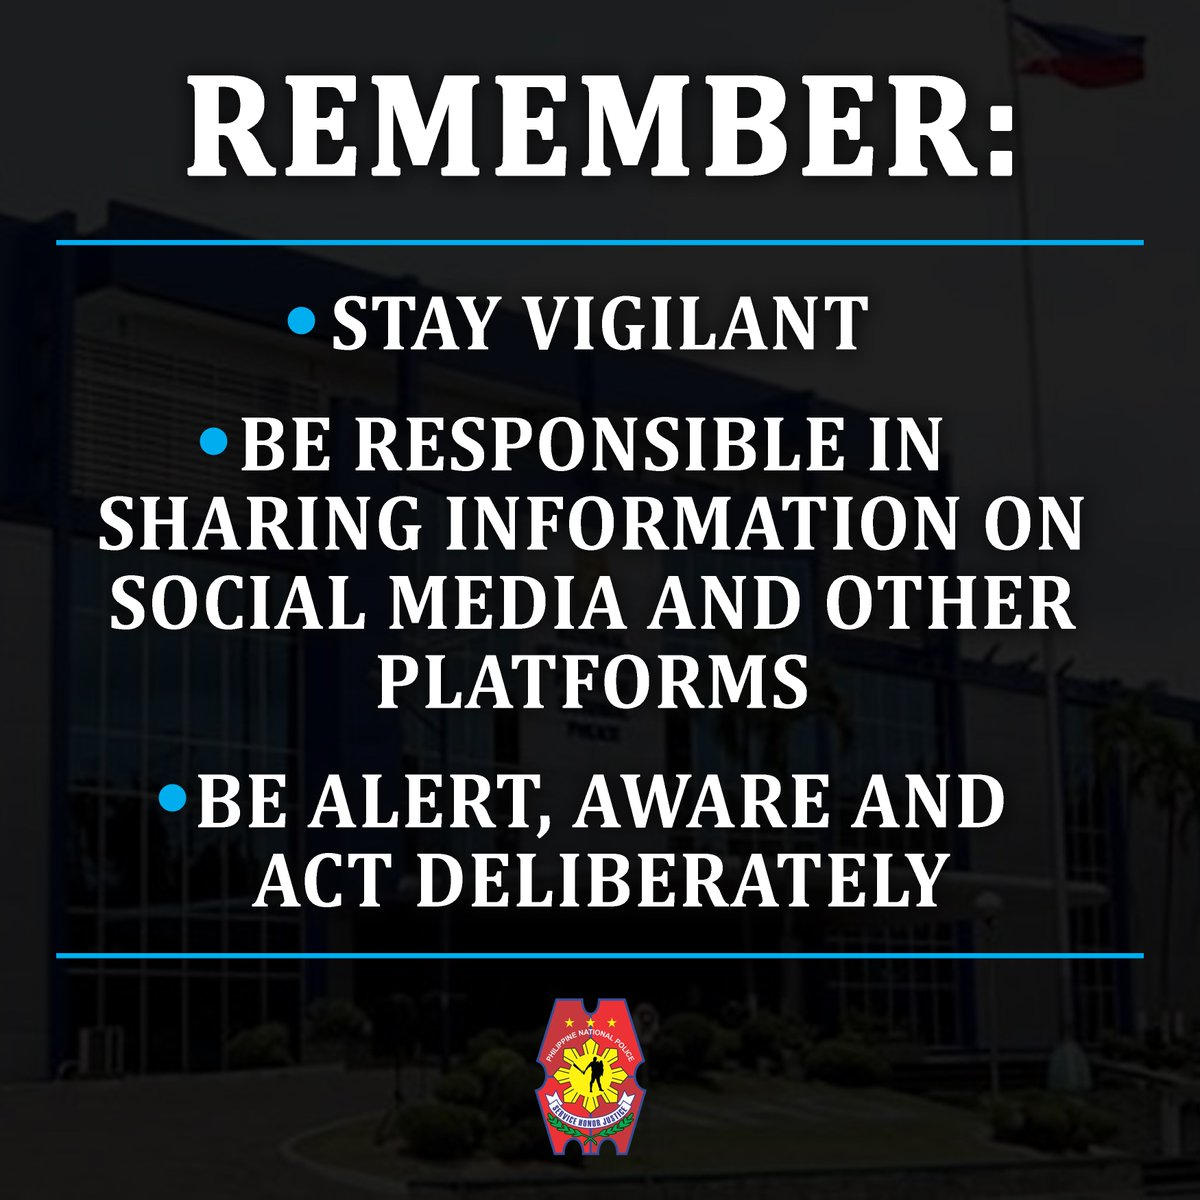 Stay safe everyone! https://t.co/PDEe80bXgT